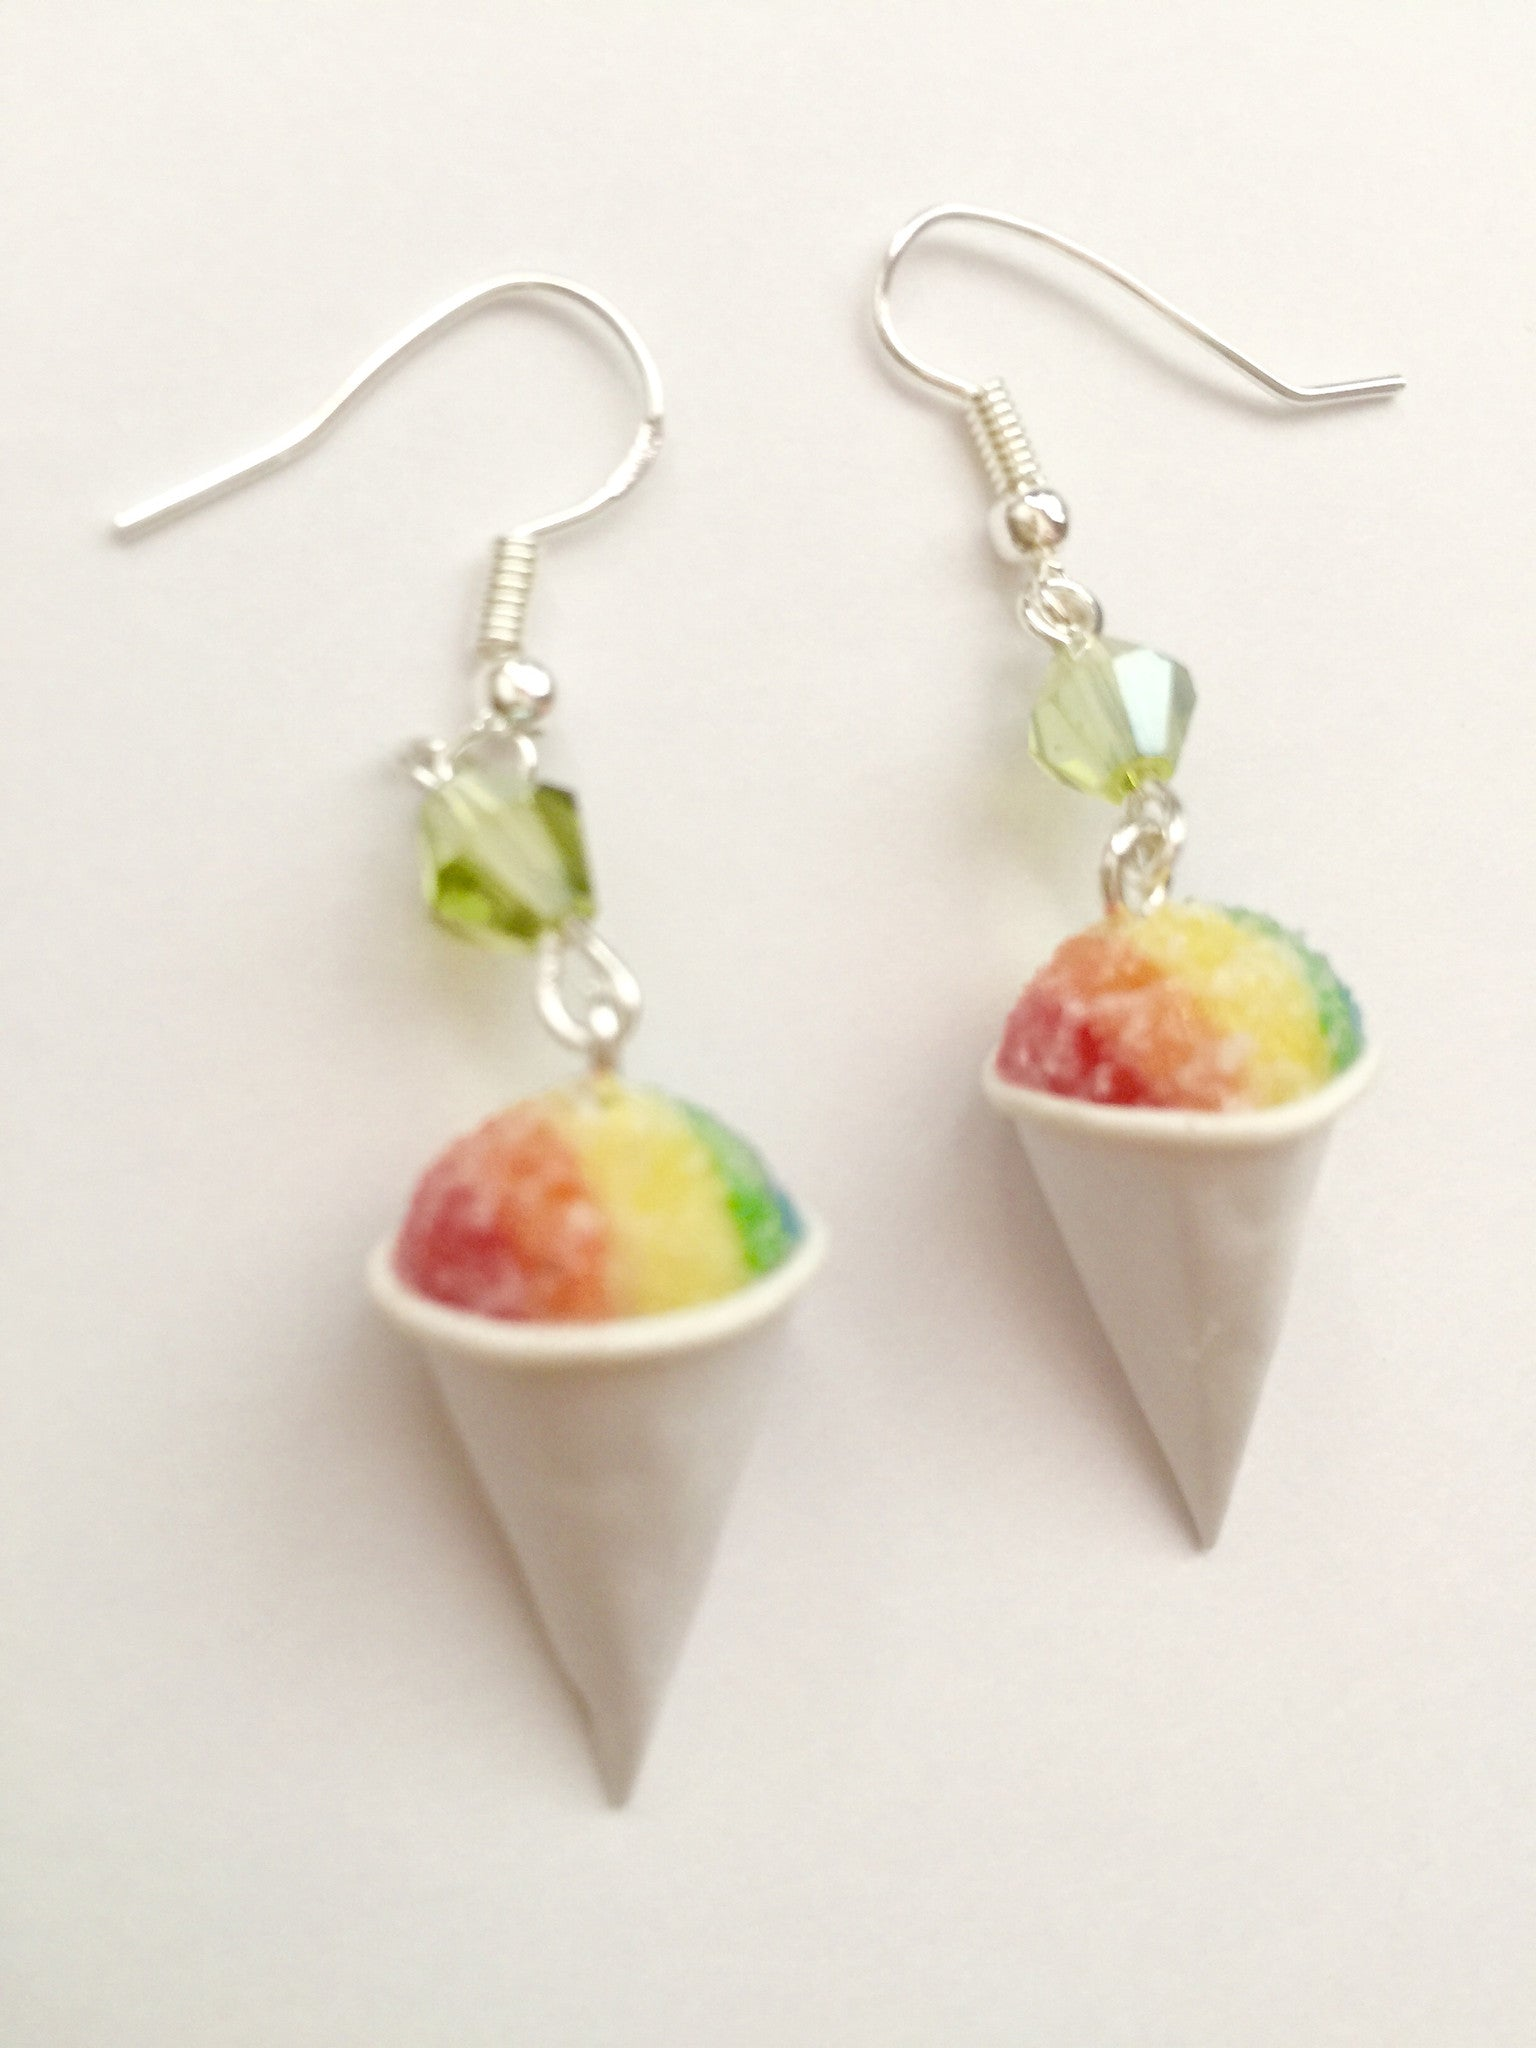 Snow Cone Dangle Earrings - Jillicious charms and accessories - 3